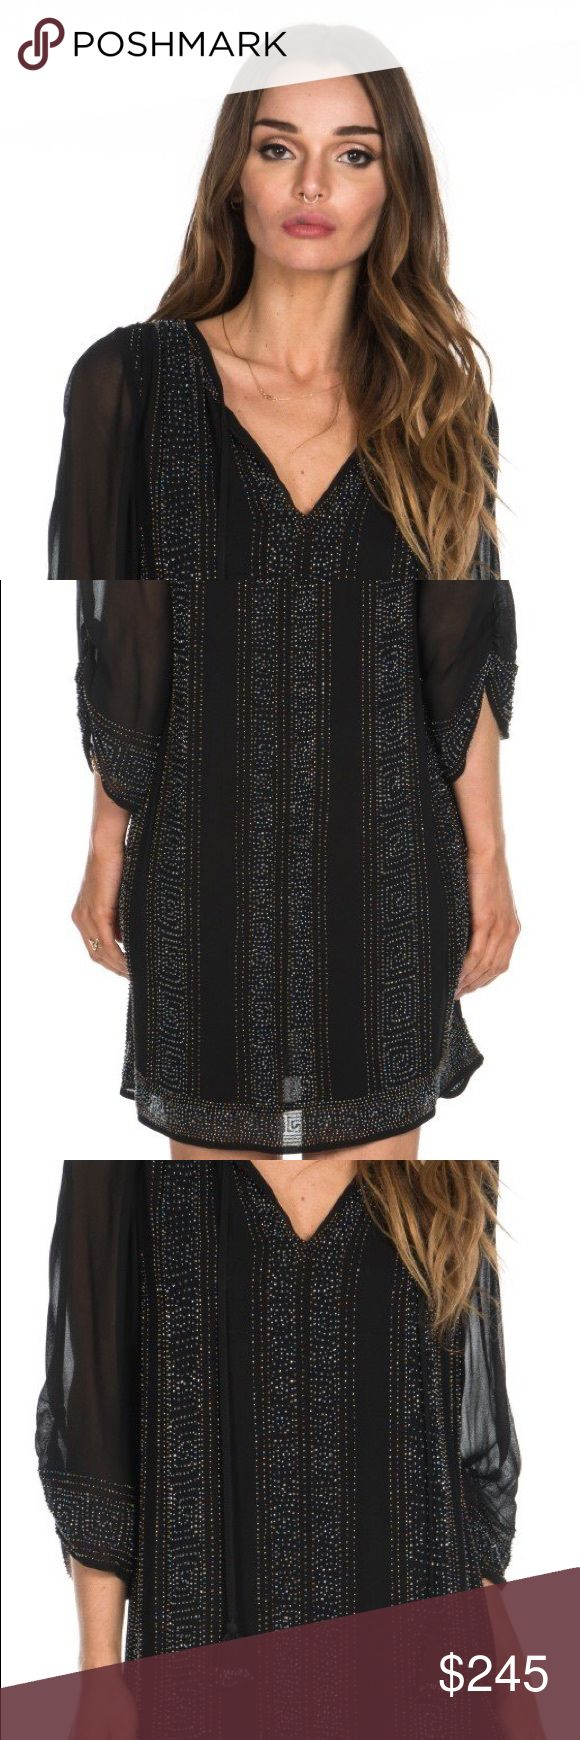 Tolani Vixi black tunic dress Tolani tunic dress with a million beads plus extra! Never worn, brand- new, perfect condition, gorgeous dress. The beads are tiny and dainty and all different colors- look iridescent when light captures! Tolani Dresses